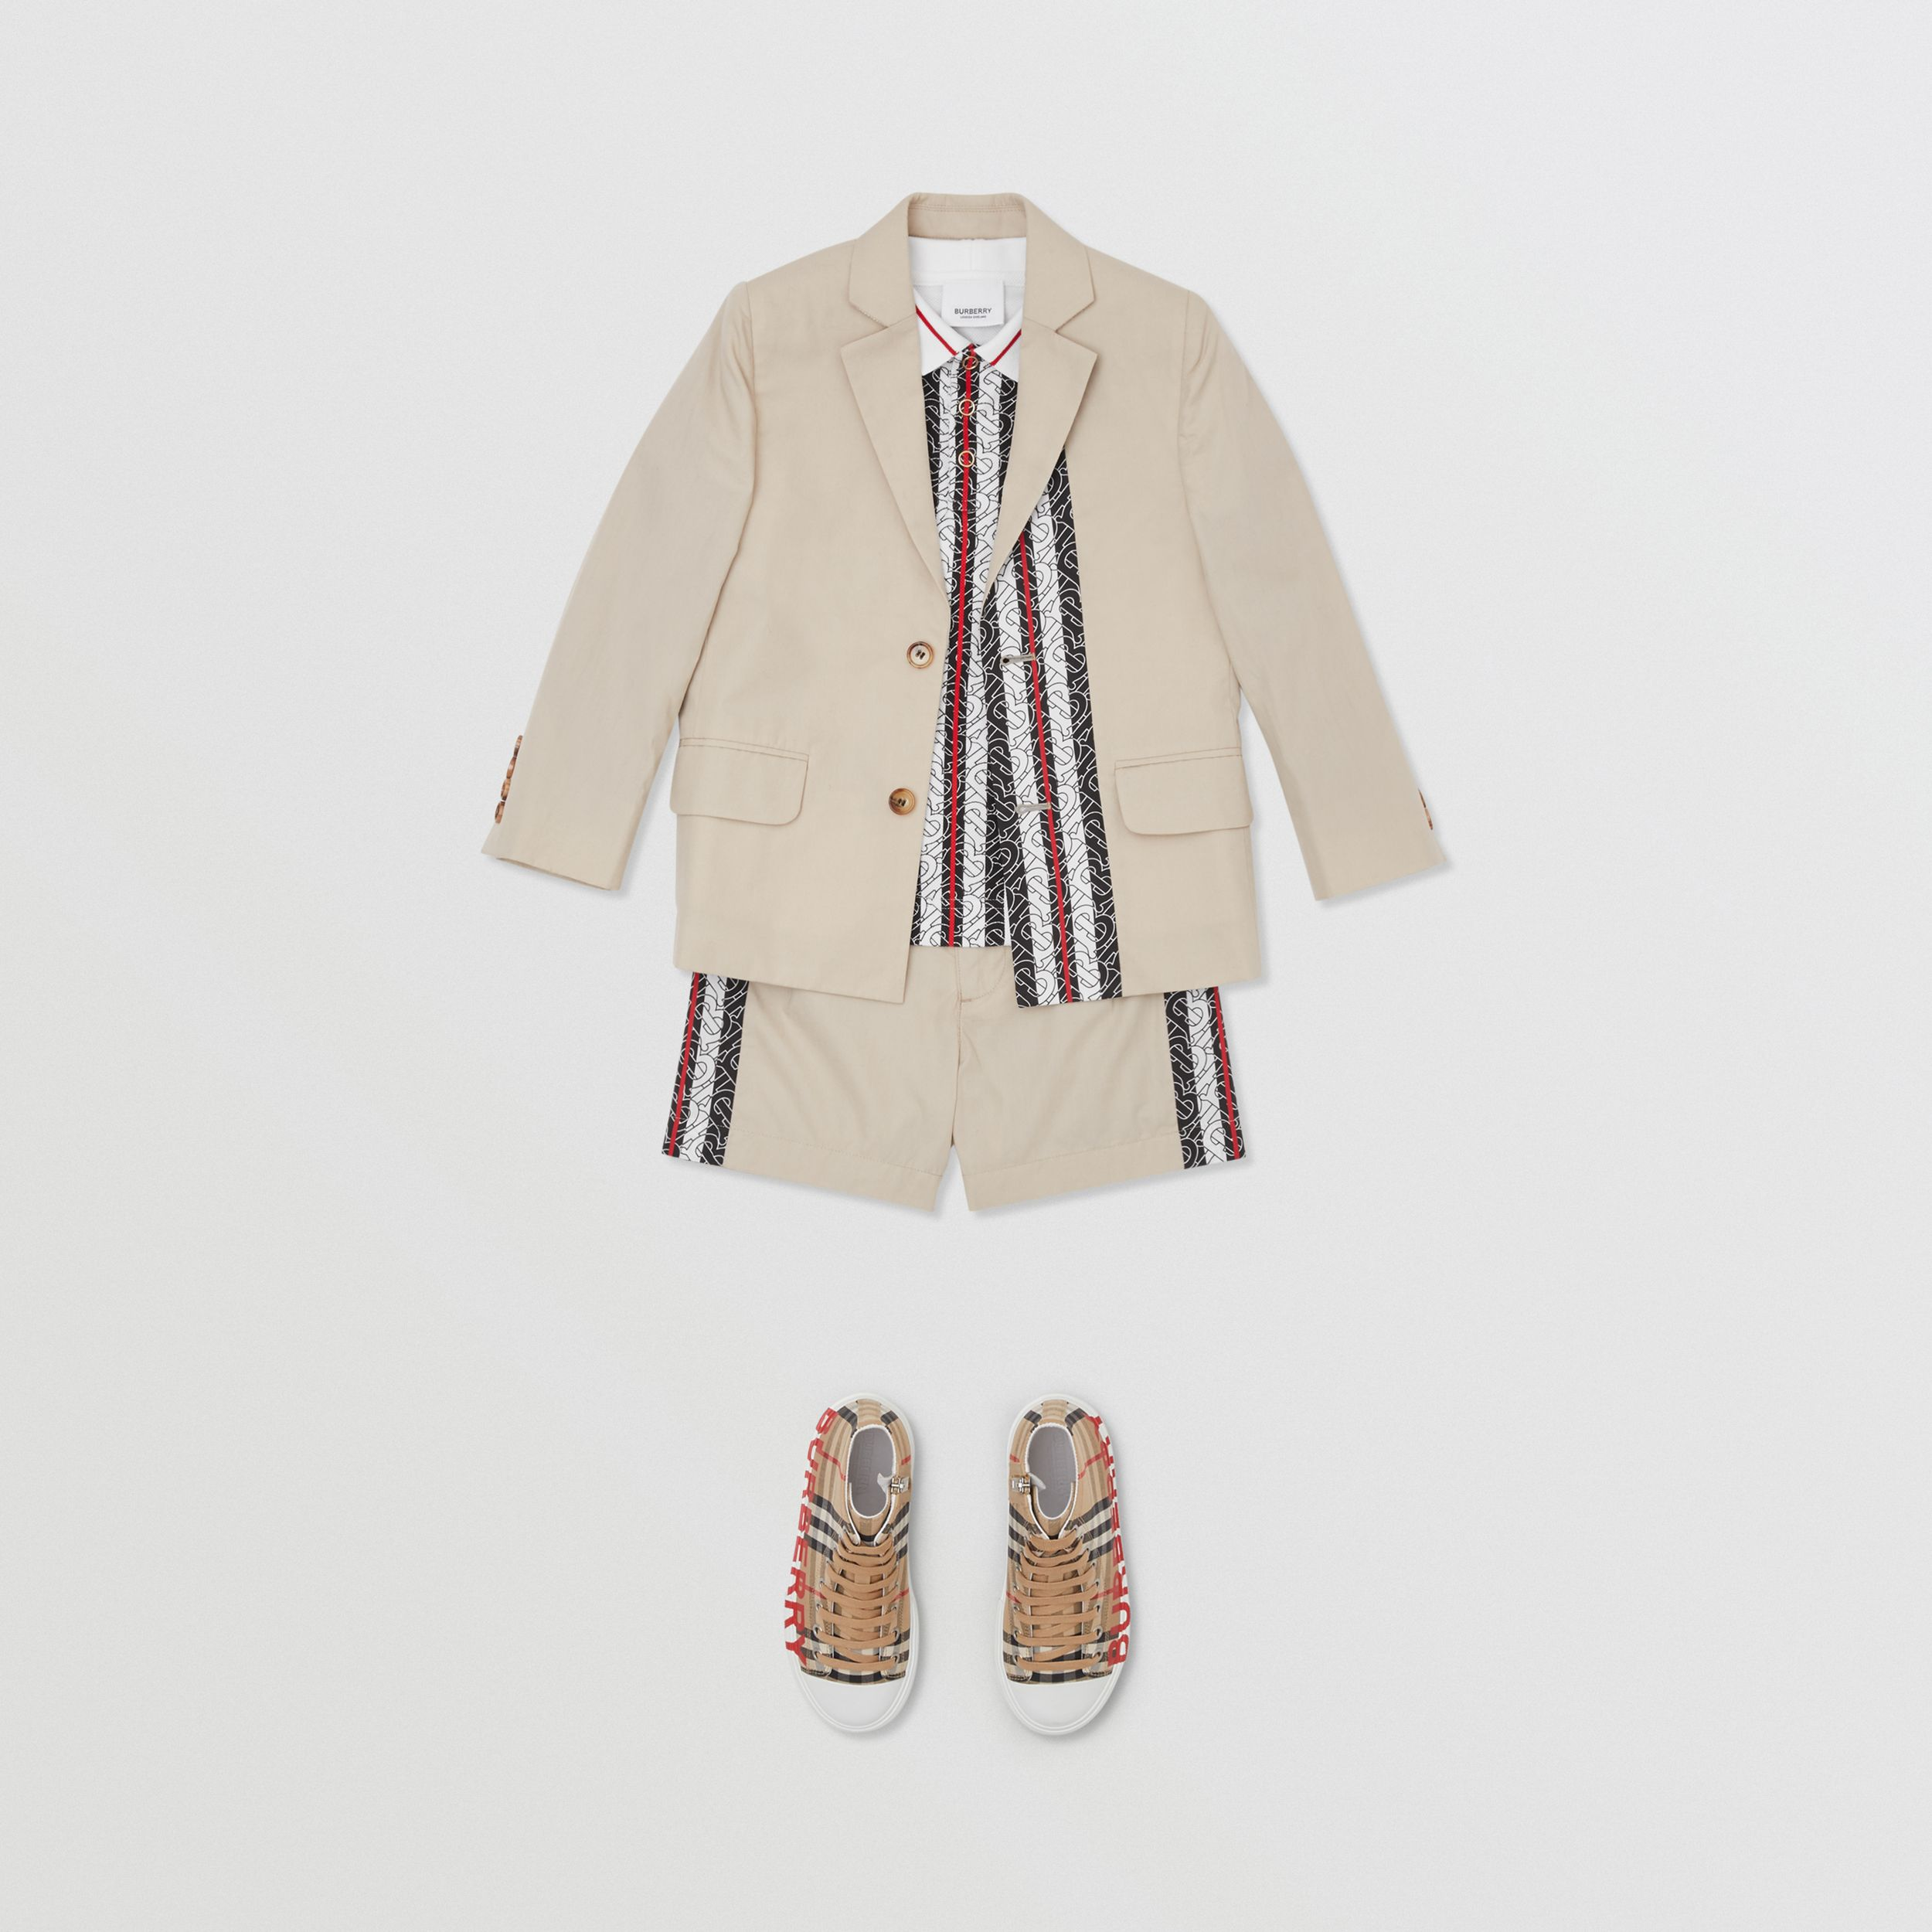 Monogram Stripe Print Cotton Blazer in Stone | Burberry - 3